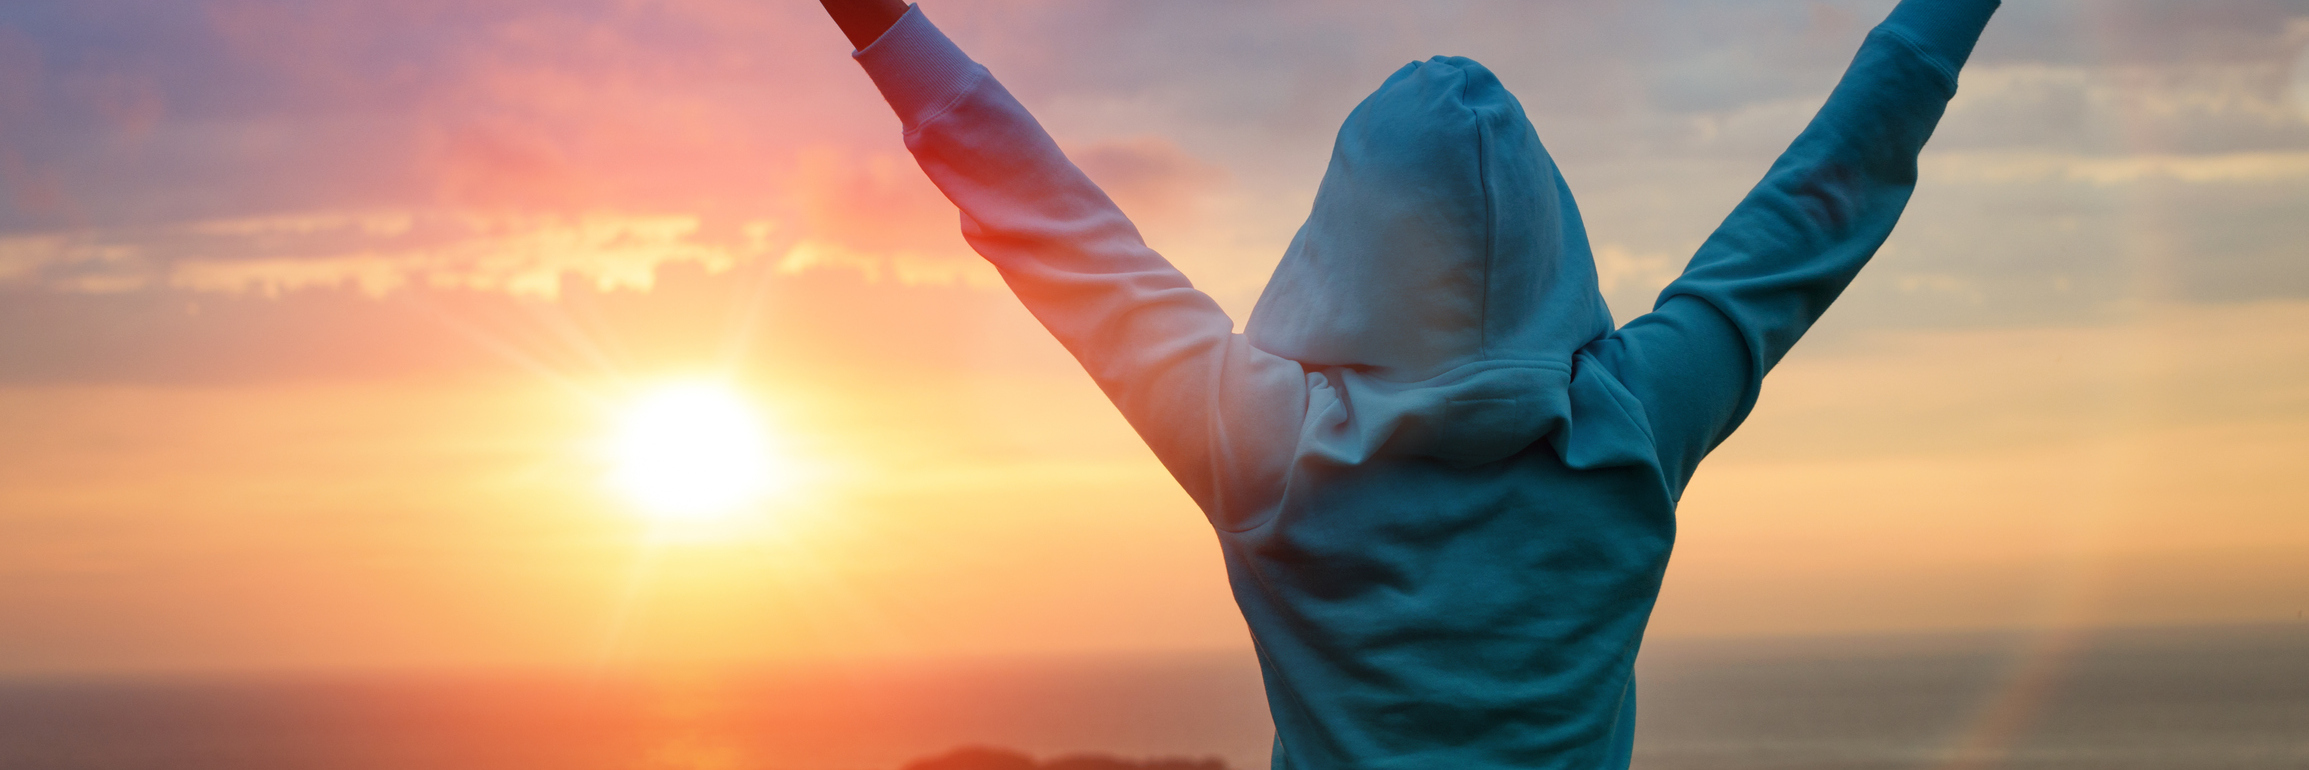 woman raising her arms in victory while looking at a sunset